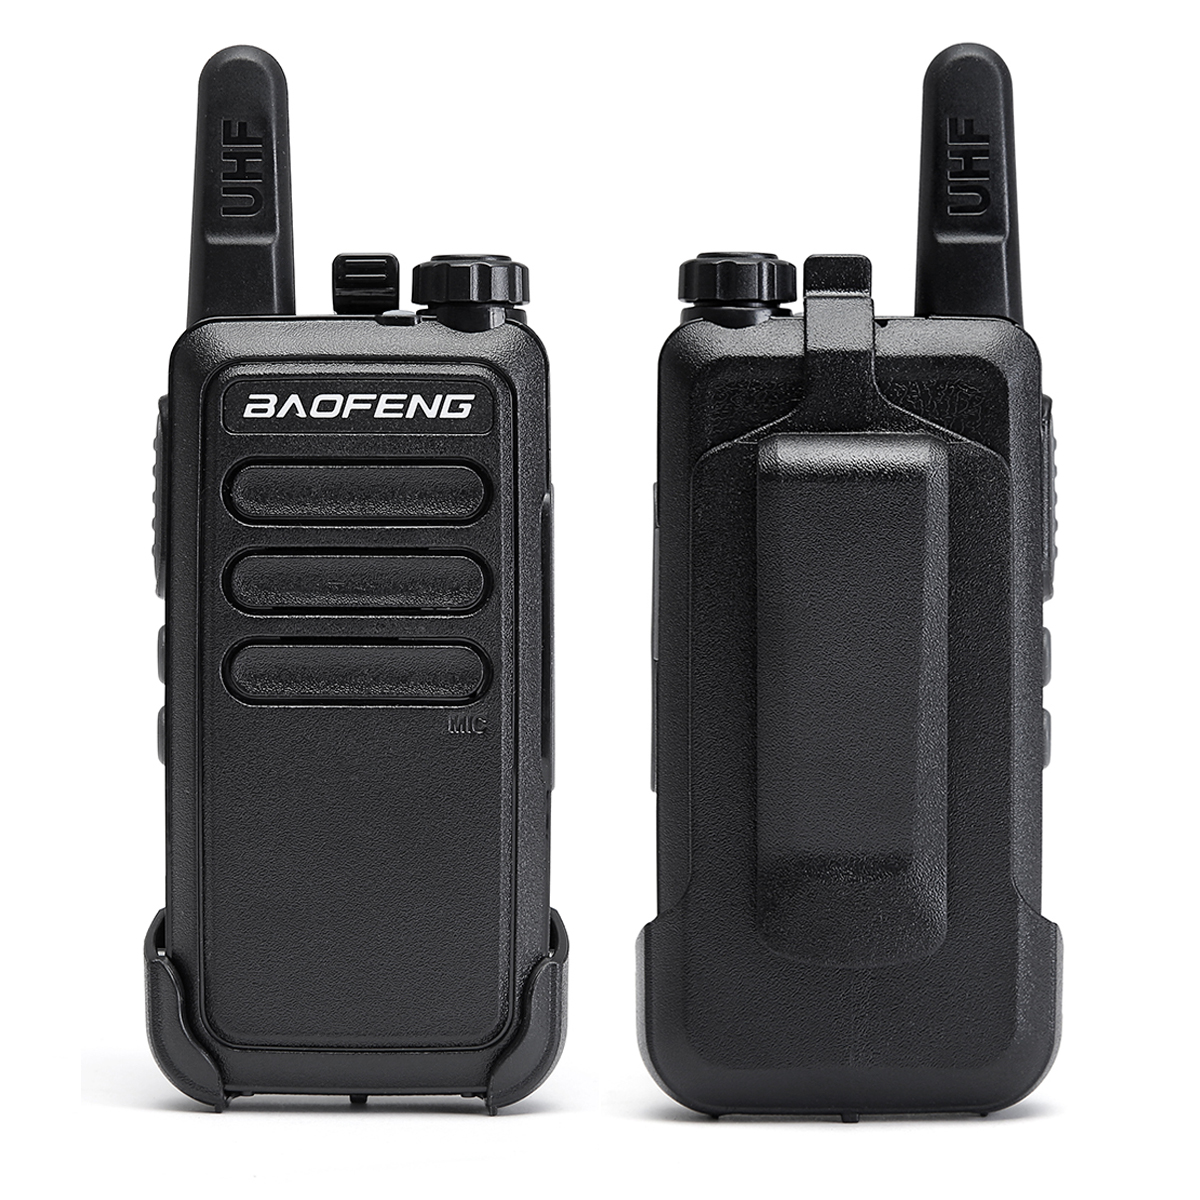 Image 5 - 2 Pcs Baofeng BF C9 Portable Radio Mini Walkie Talkie 400 470MHz UHF VOX USB Charging Handheld Two Way Ham Radio CommunicatorWalkie Talkie   -